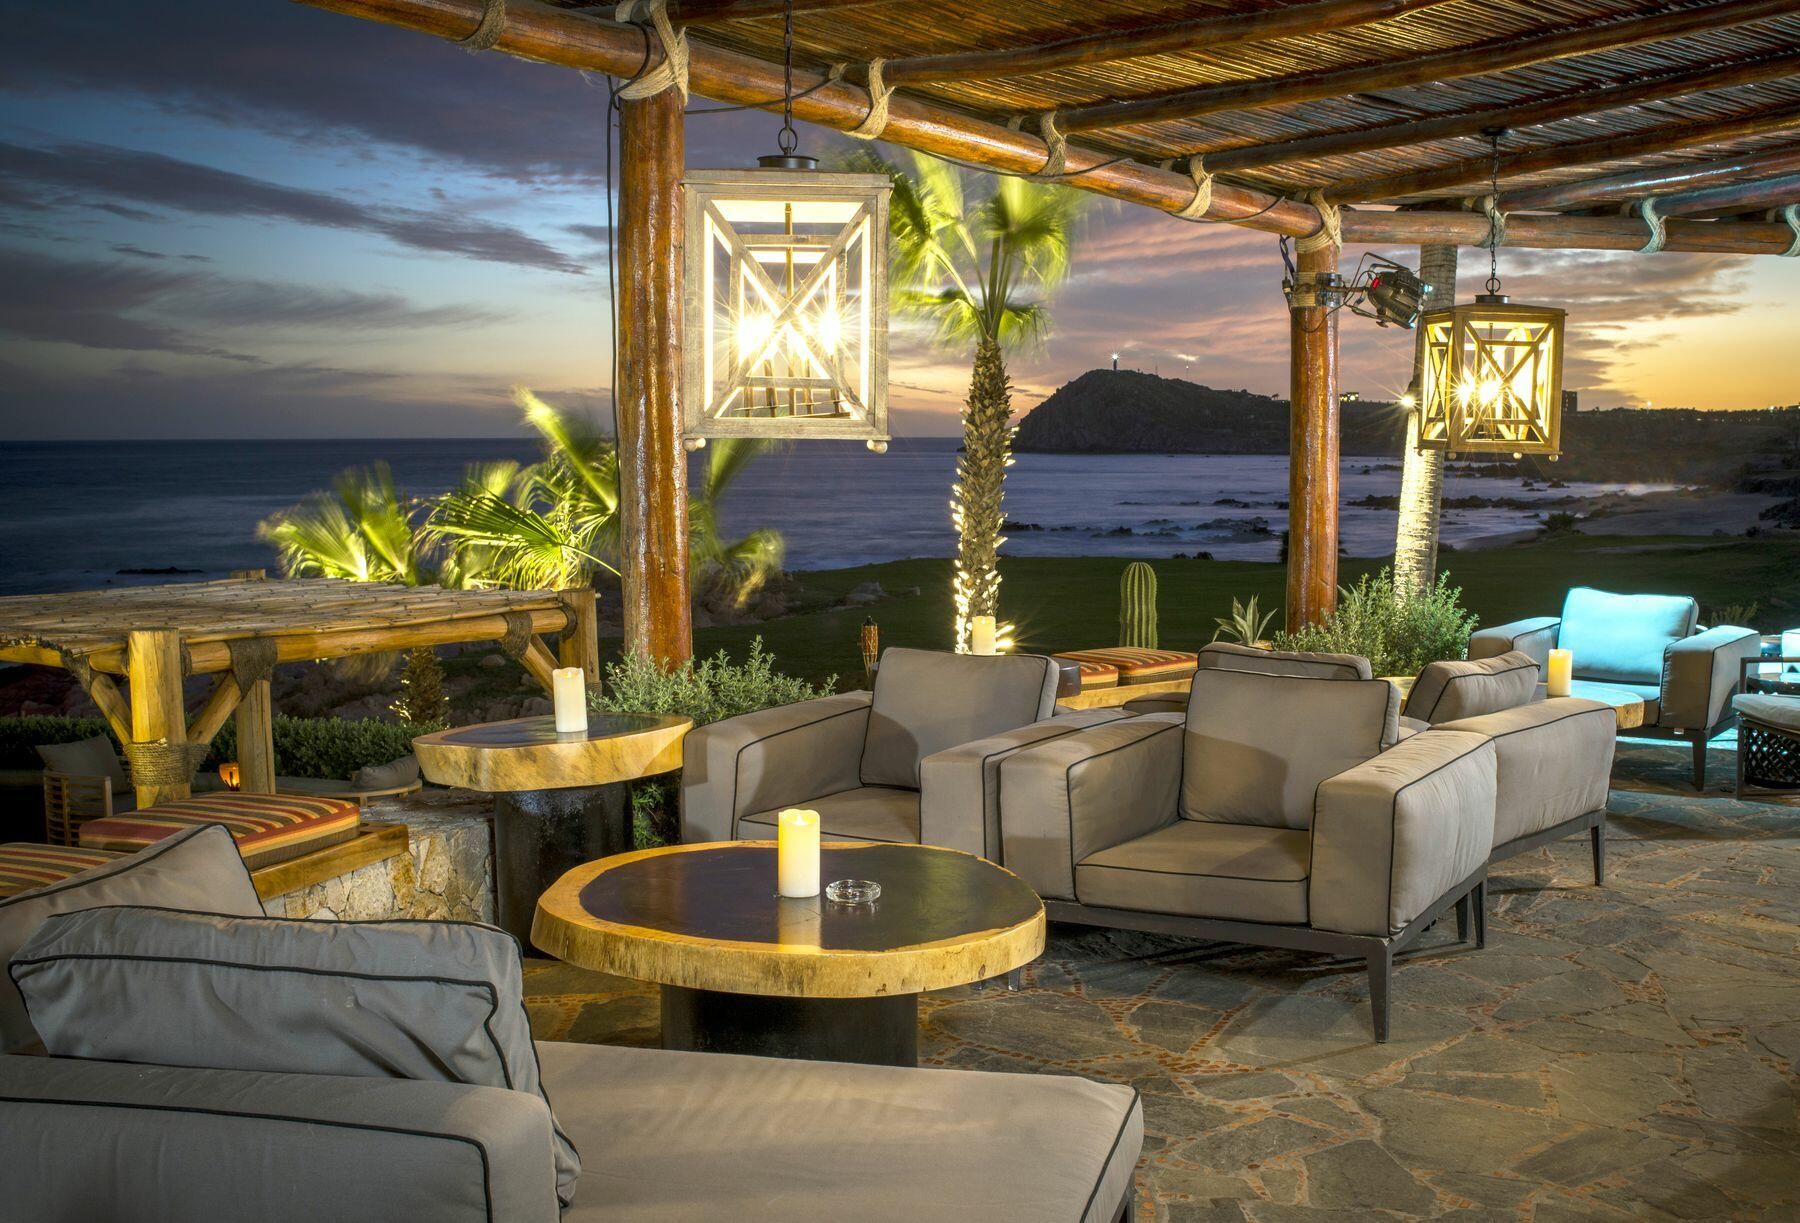 Waterfront Patio